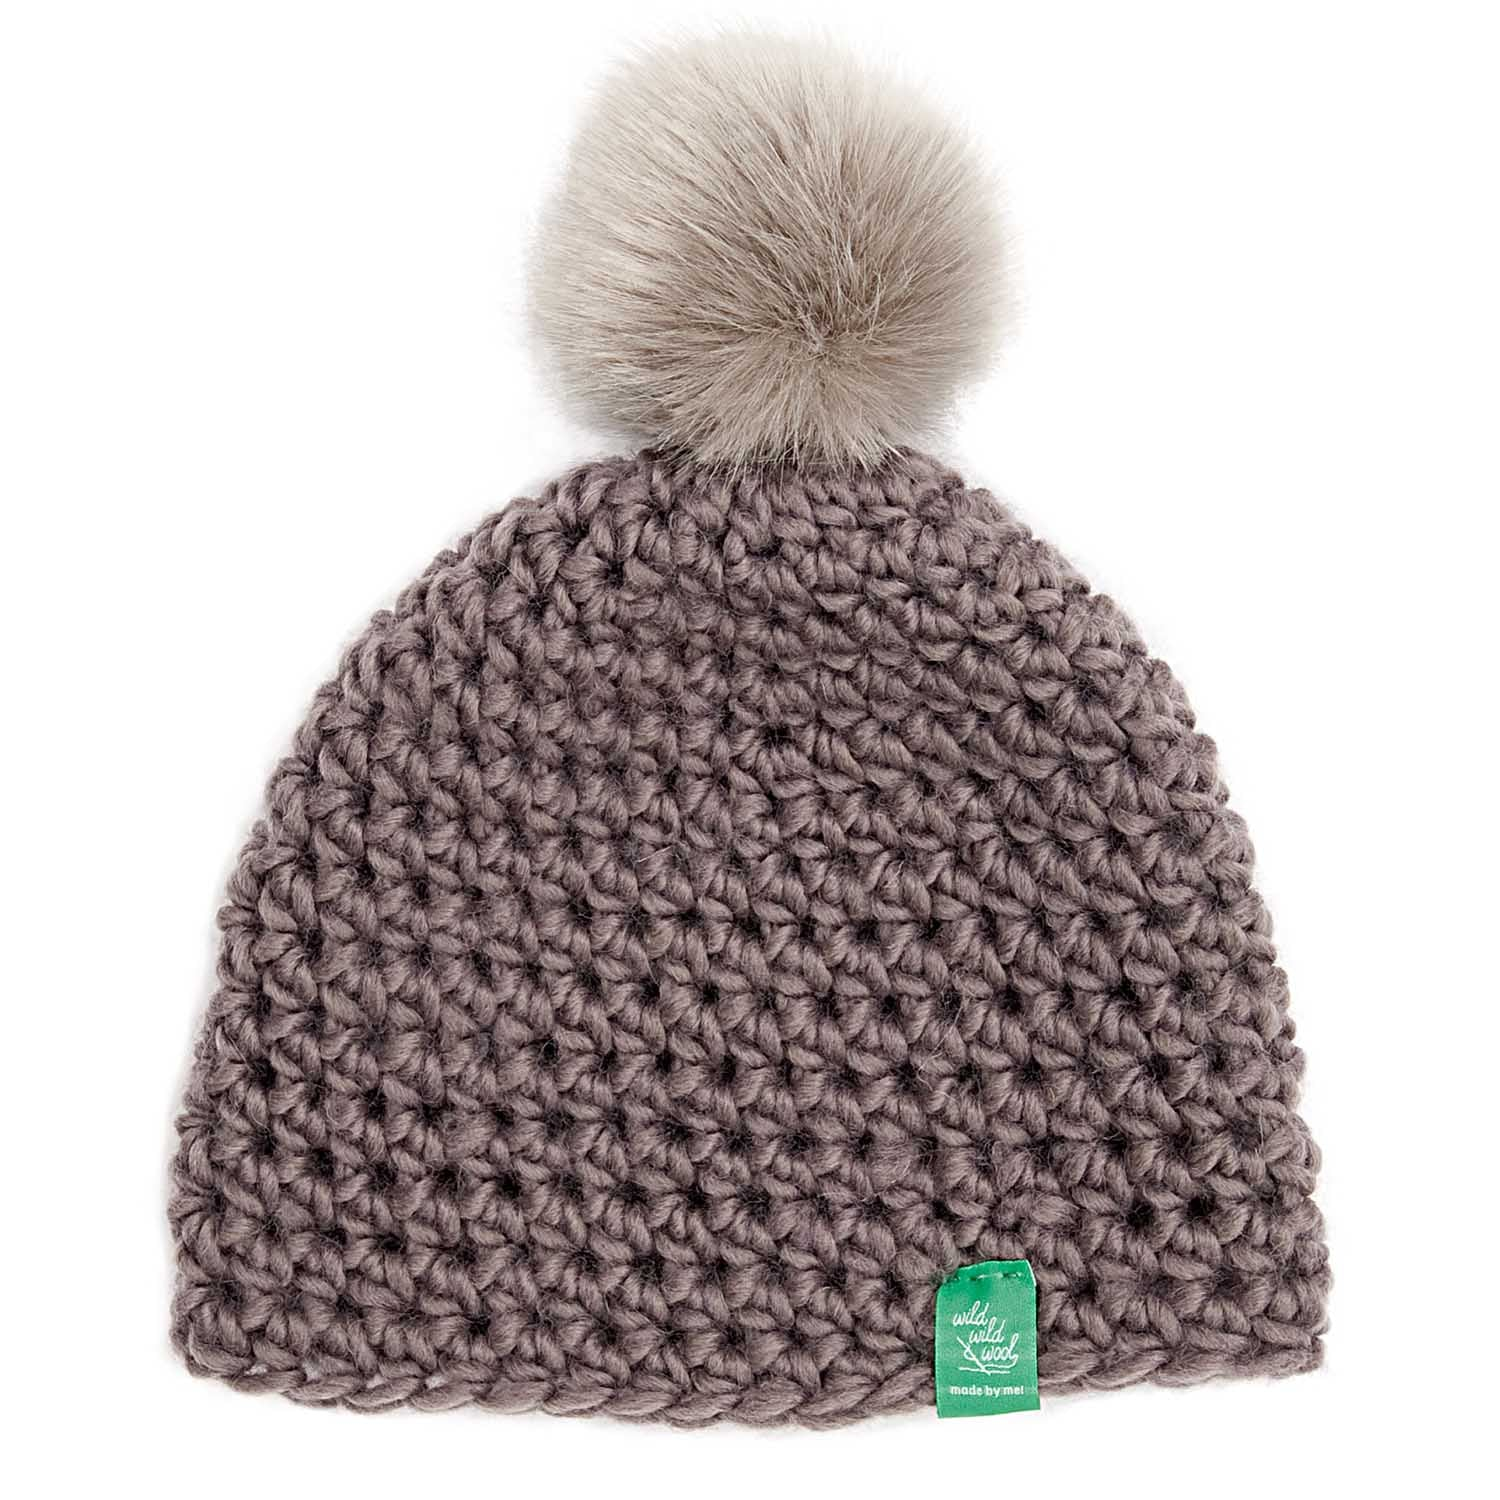 Crochet Pom Pom Hat Kit The Makery